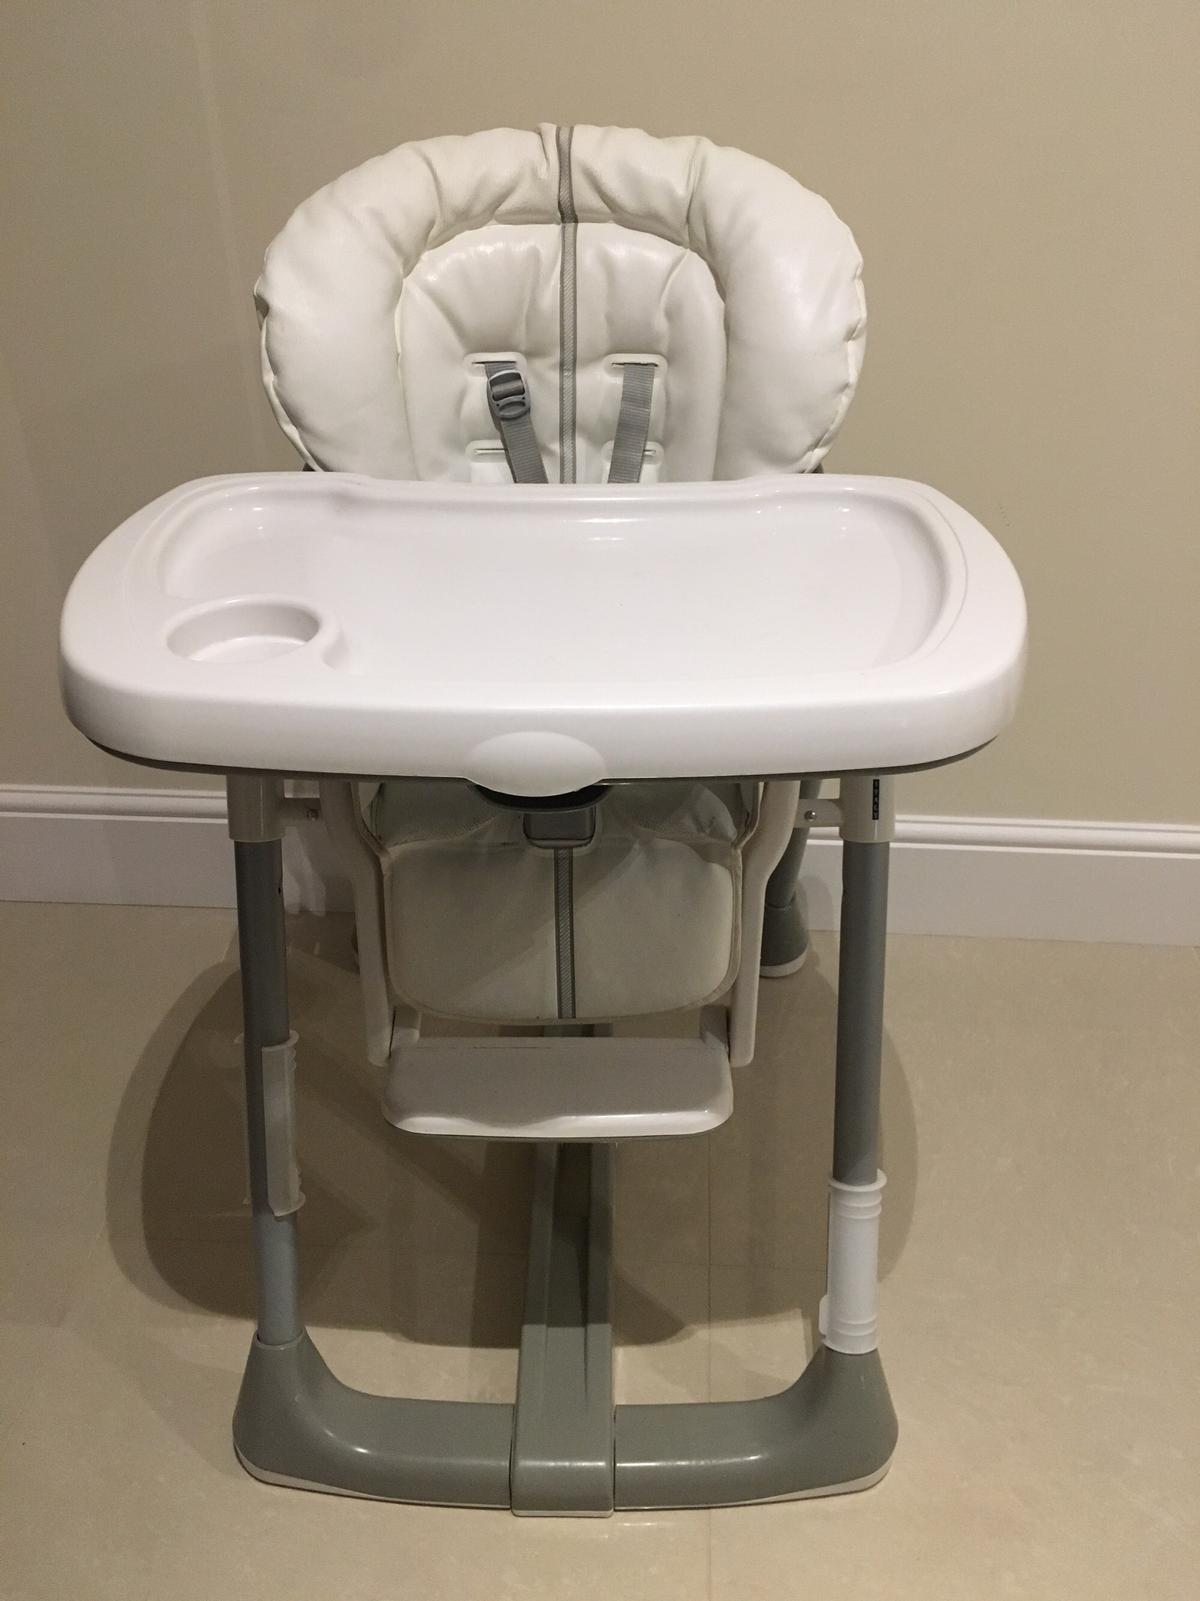 Wondrous Mamas And Papas Prima Papa Evo High Chair In L35 Helens For Bralicious Painted Fabric Chair Ideas Braliciousco